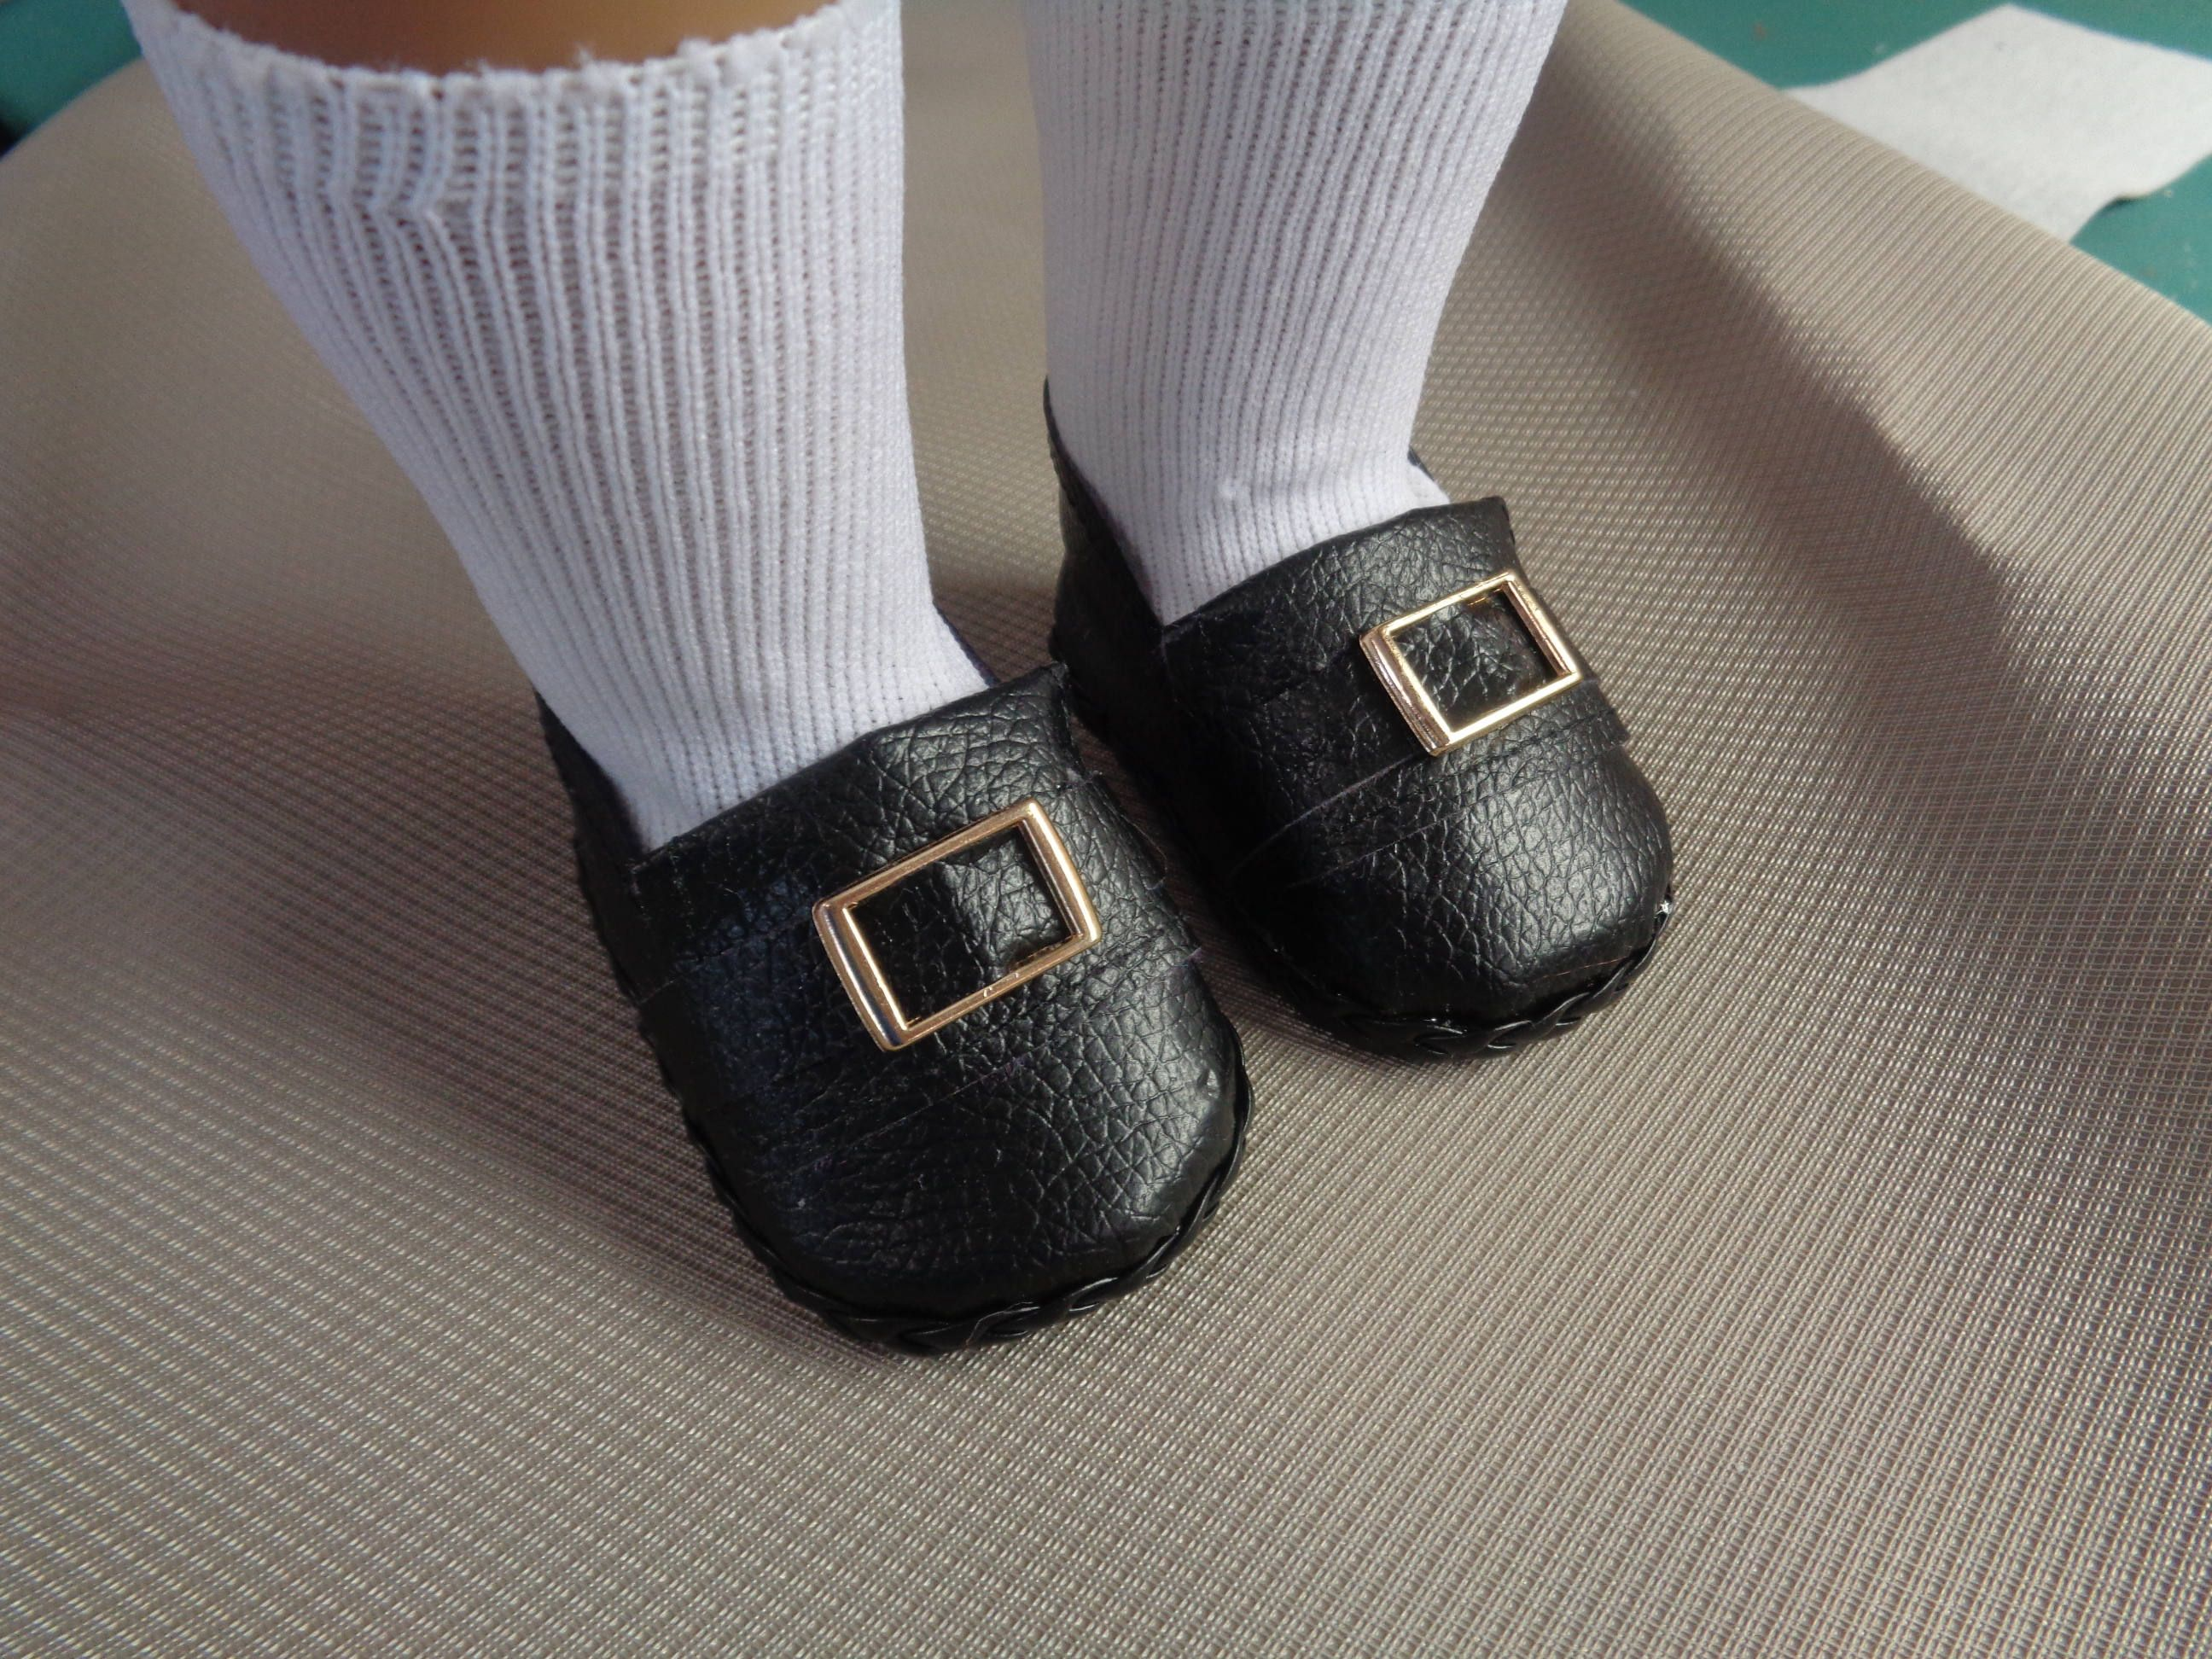 501b590dacc32 Black Colonial Brass Buckle Doll Shoes -Fits 18 Inch Dolls - Fits ...